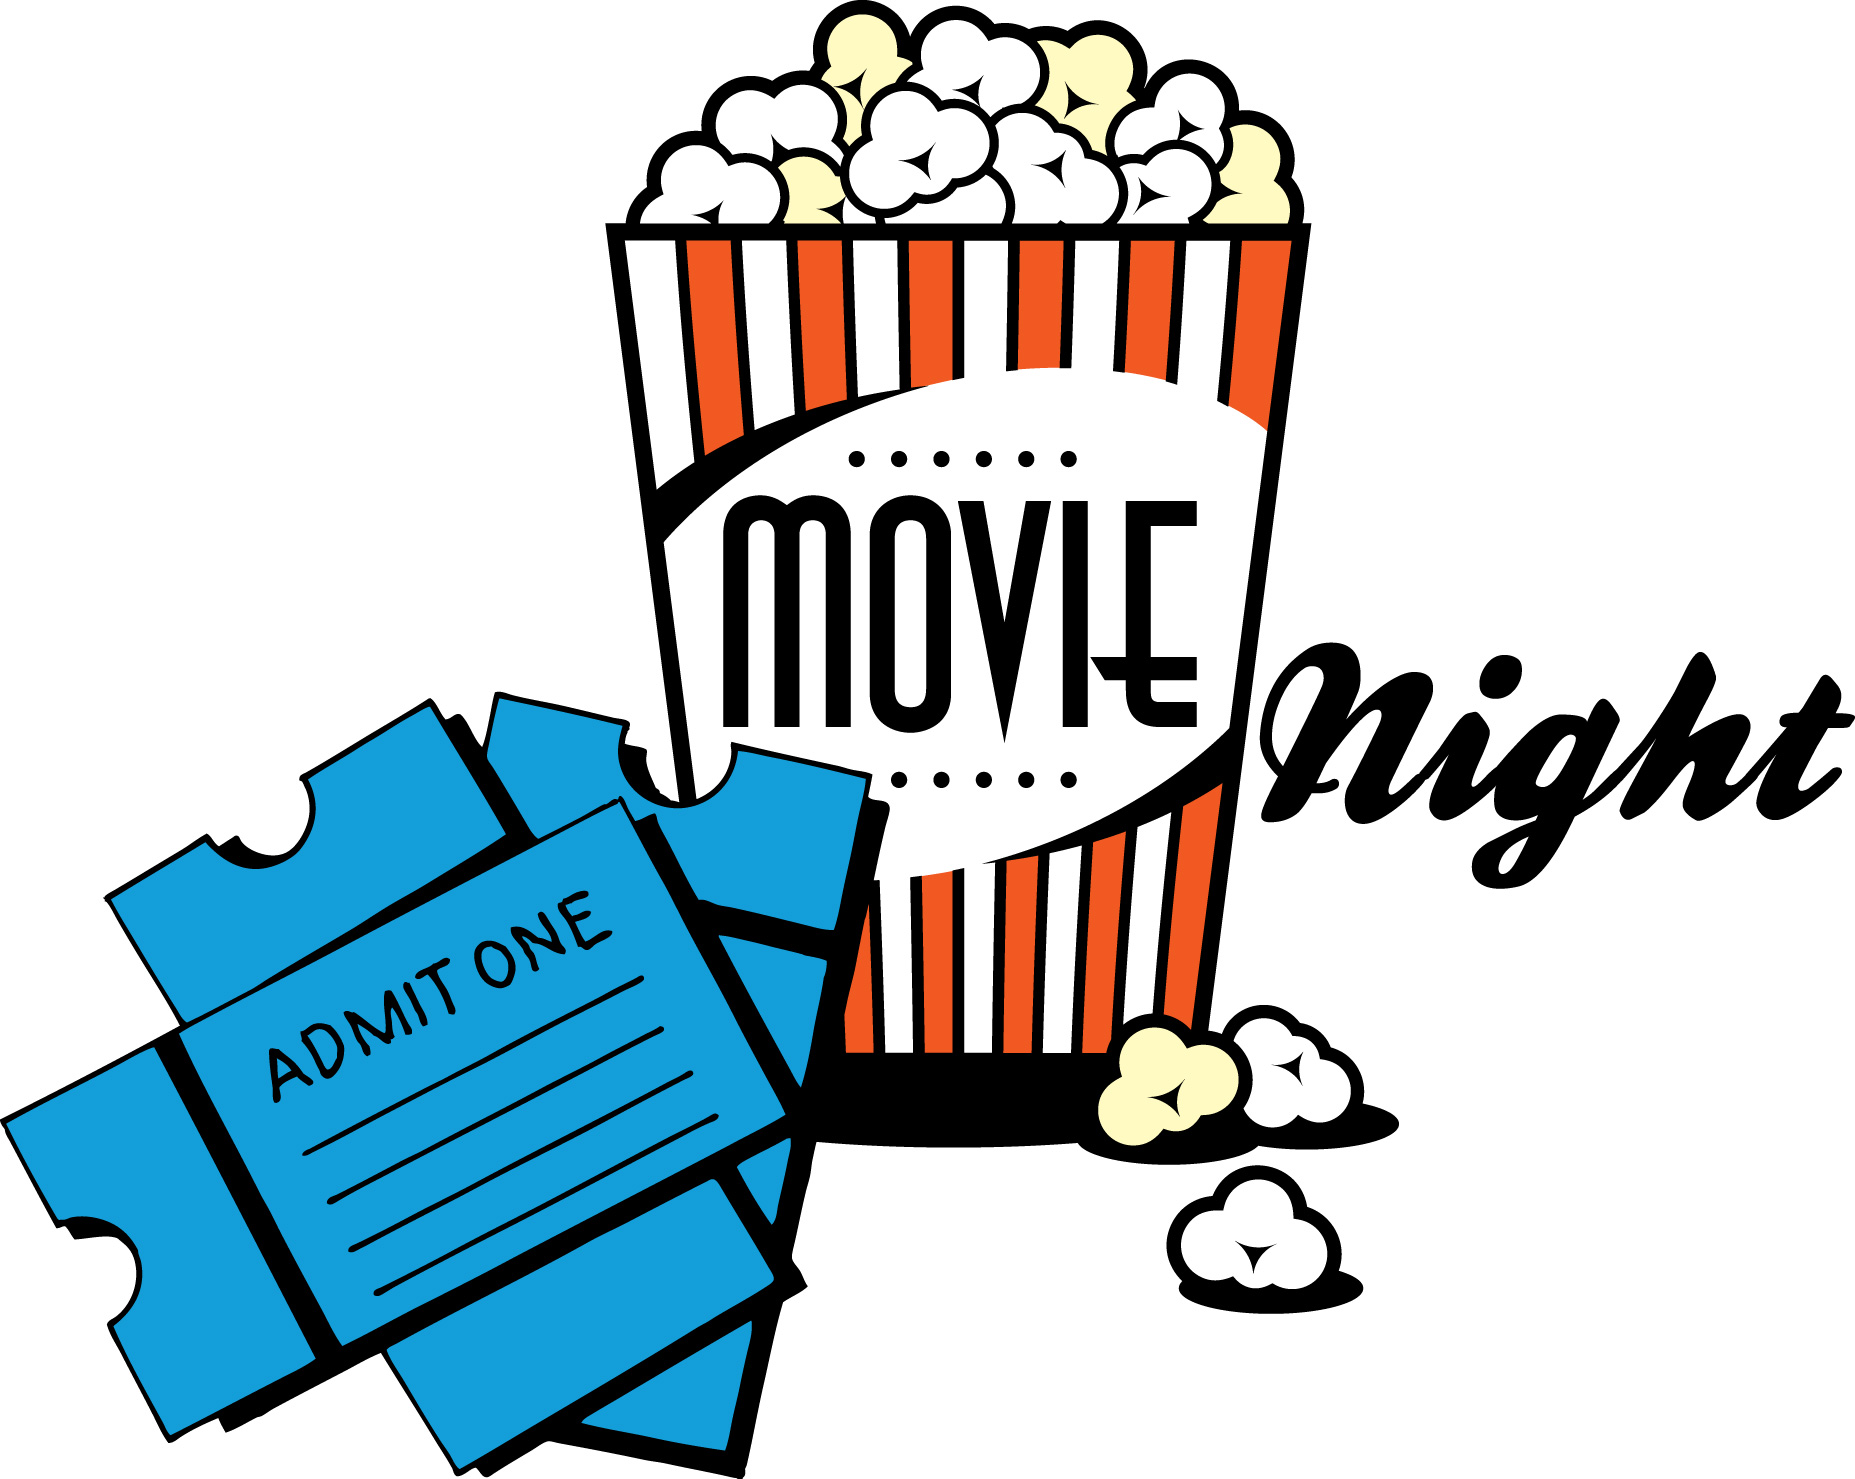 Clipart movie night banner royalty free library Free Movie Night Cliparts, Download Free Clip Art, Free Clip Art on ... banner royalty free library